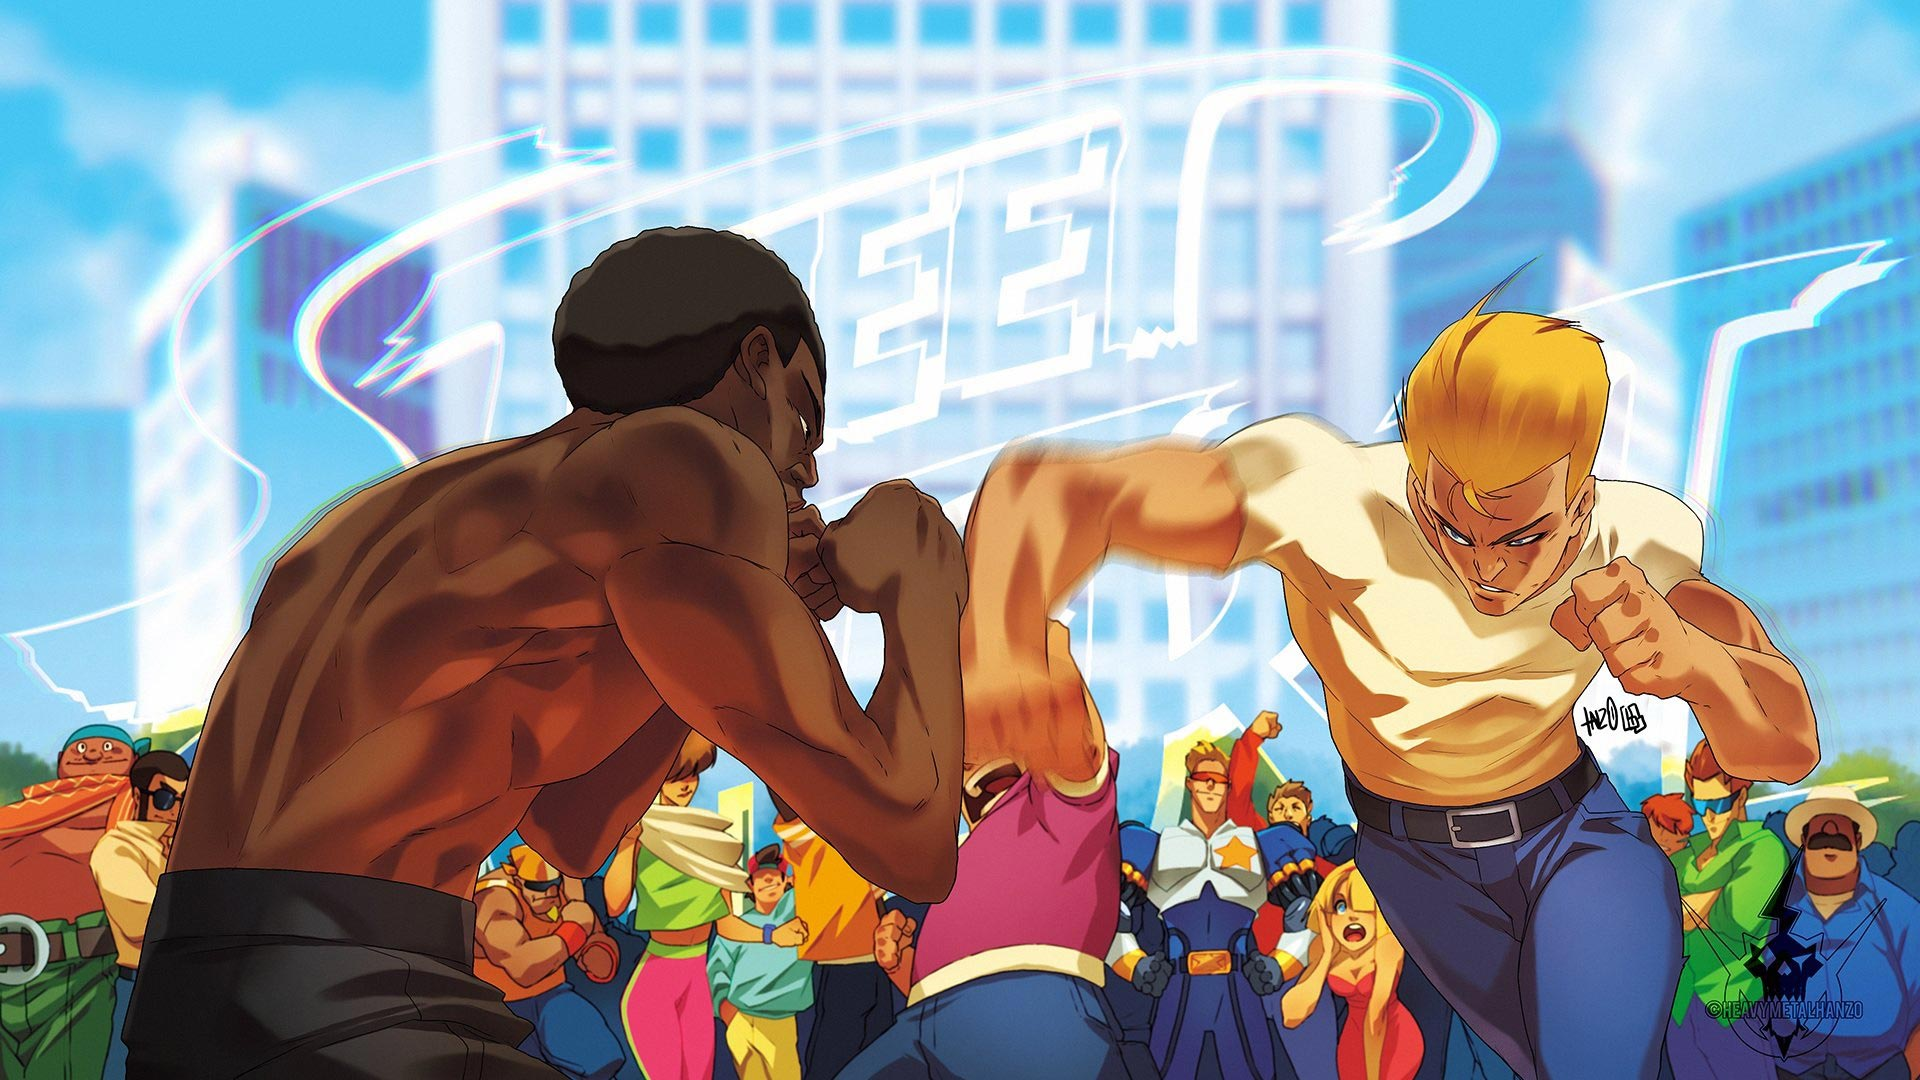 HeavyMetalHanzo's Street Fighter 2 artwork 1 out of 1 image gallery